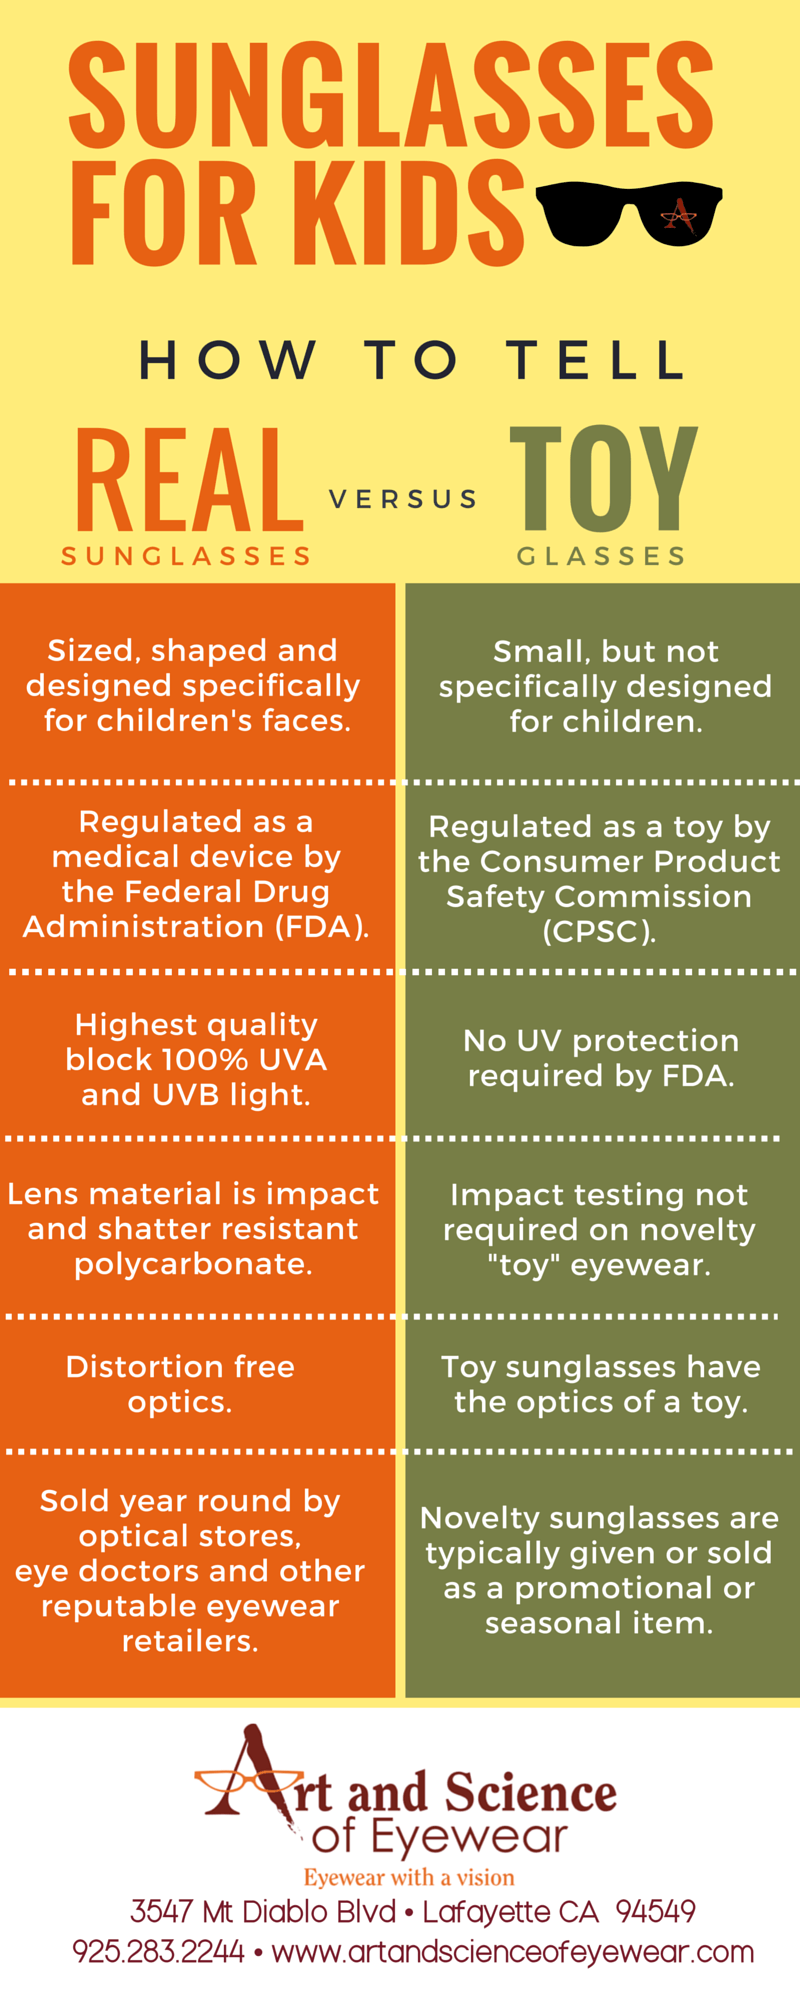 [Infographic] Sunglasses for Kids - Real Sunglasses vs Toy